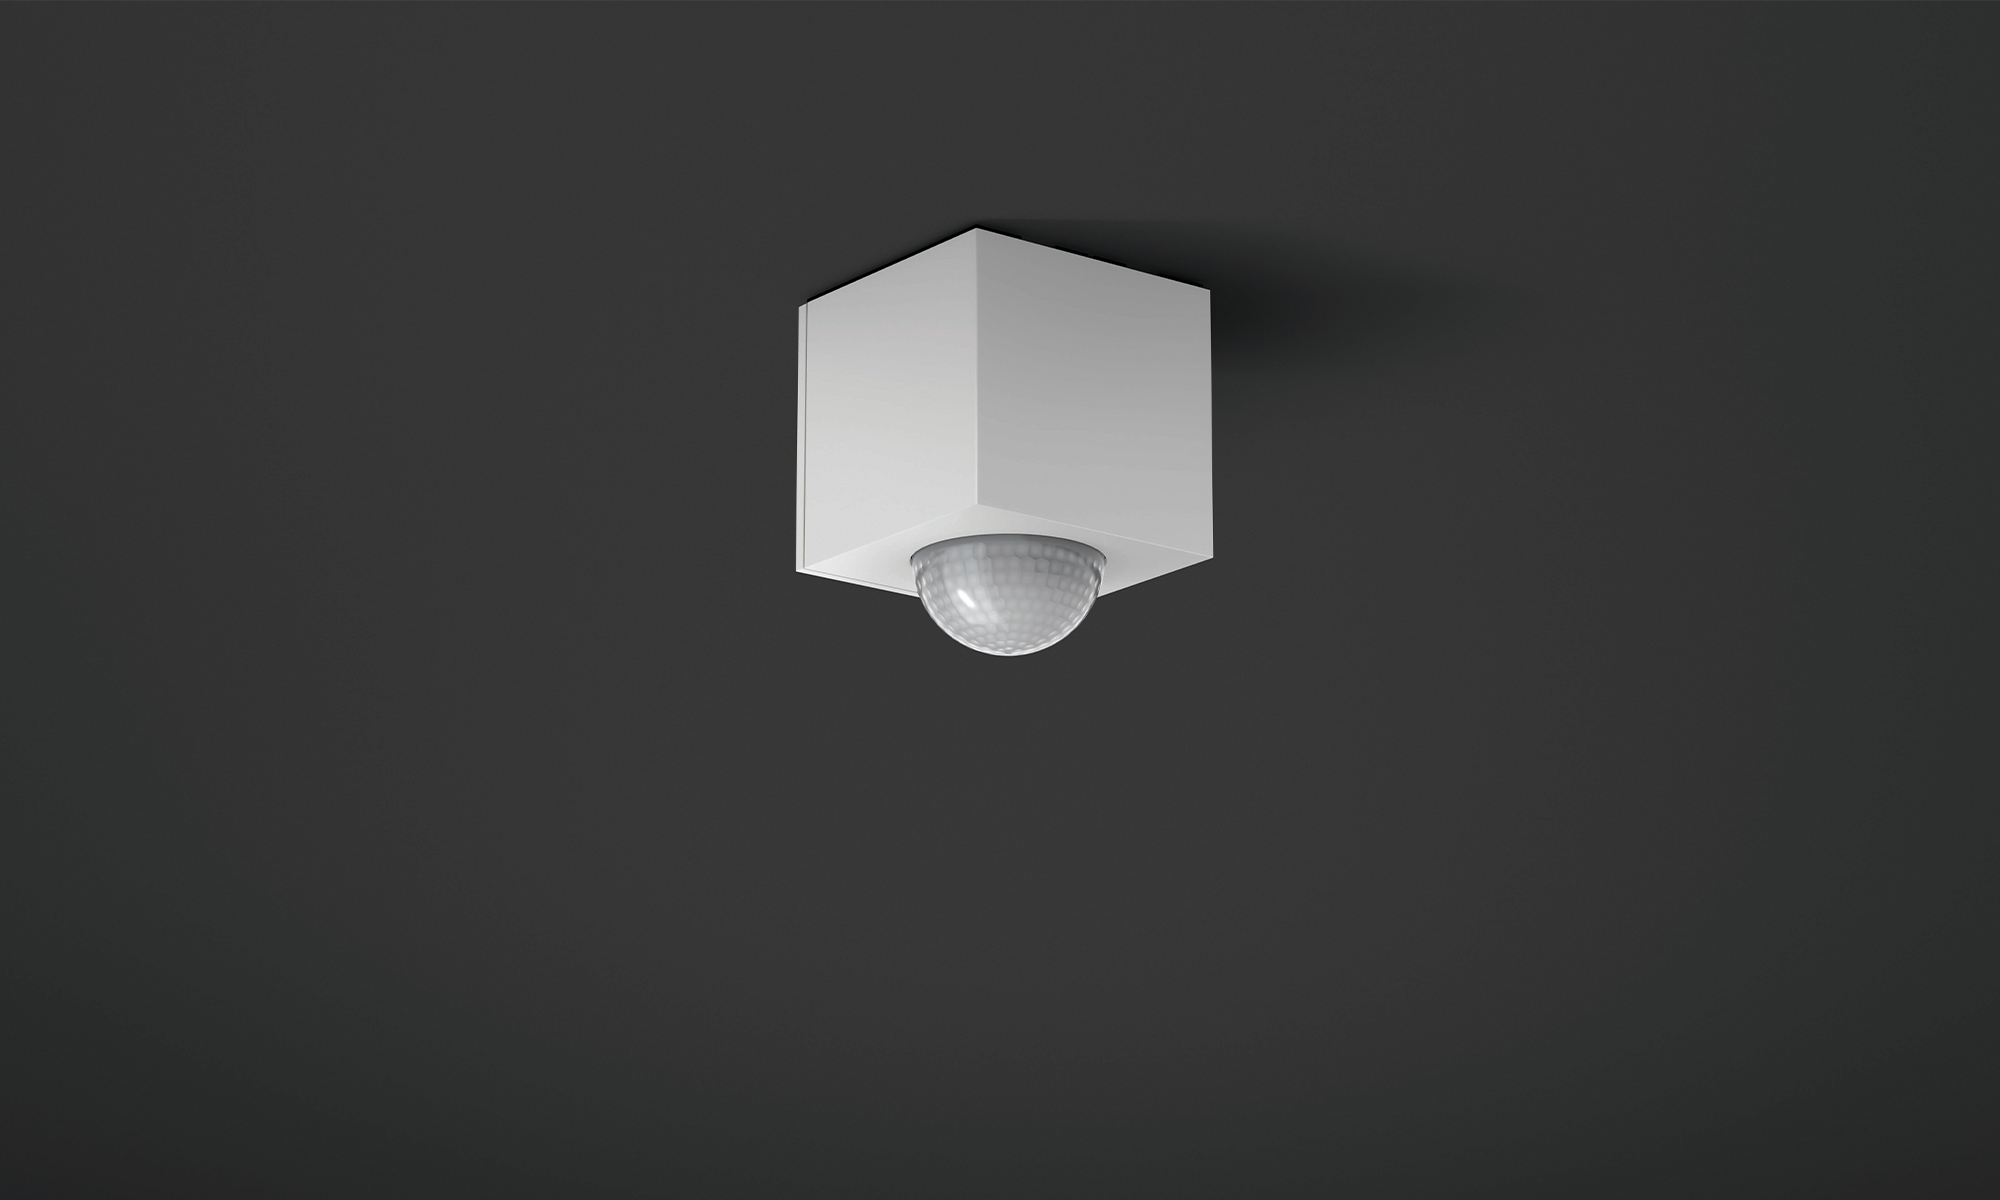 Gira motion detector Cube for garden lights